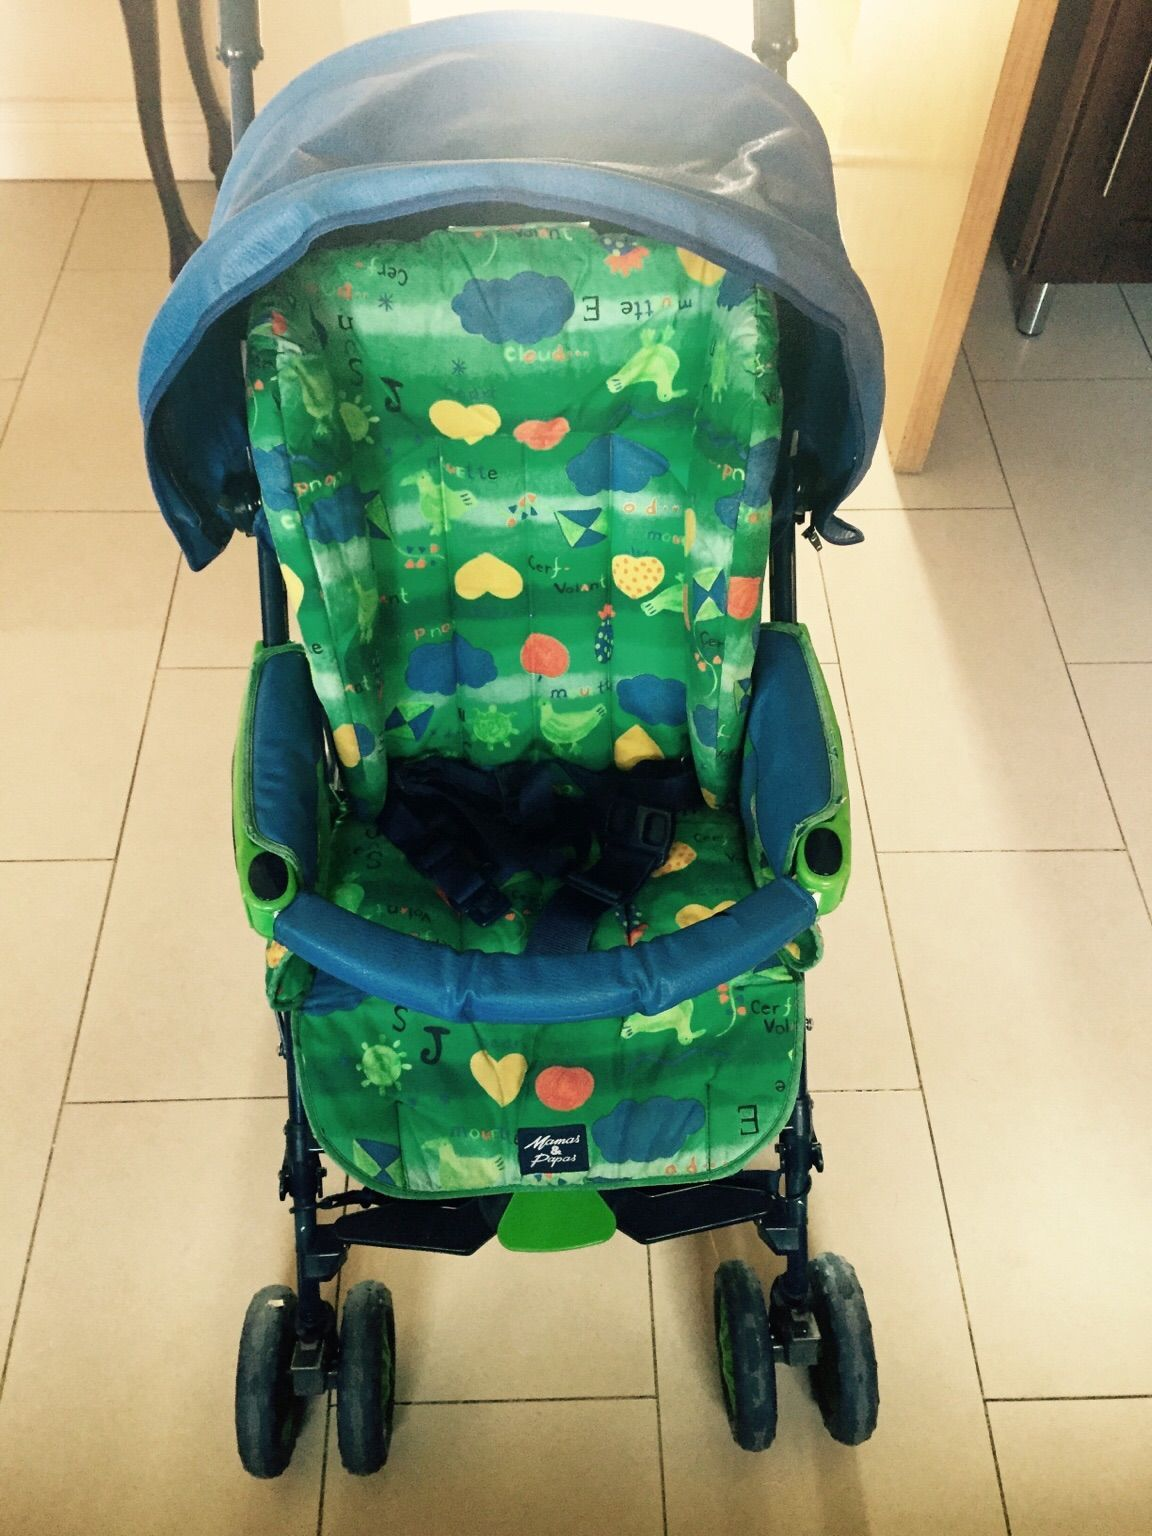 Mamas and Papas pliko matic pushchair Baby strollers